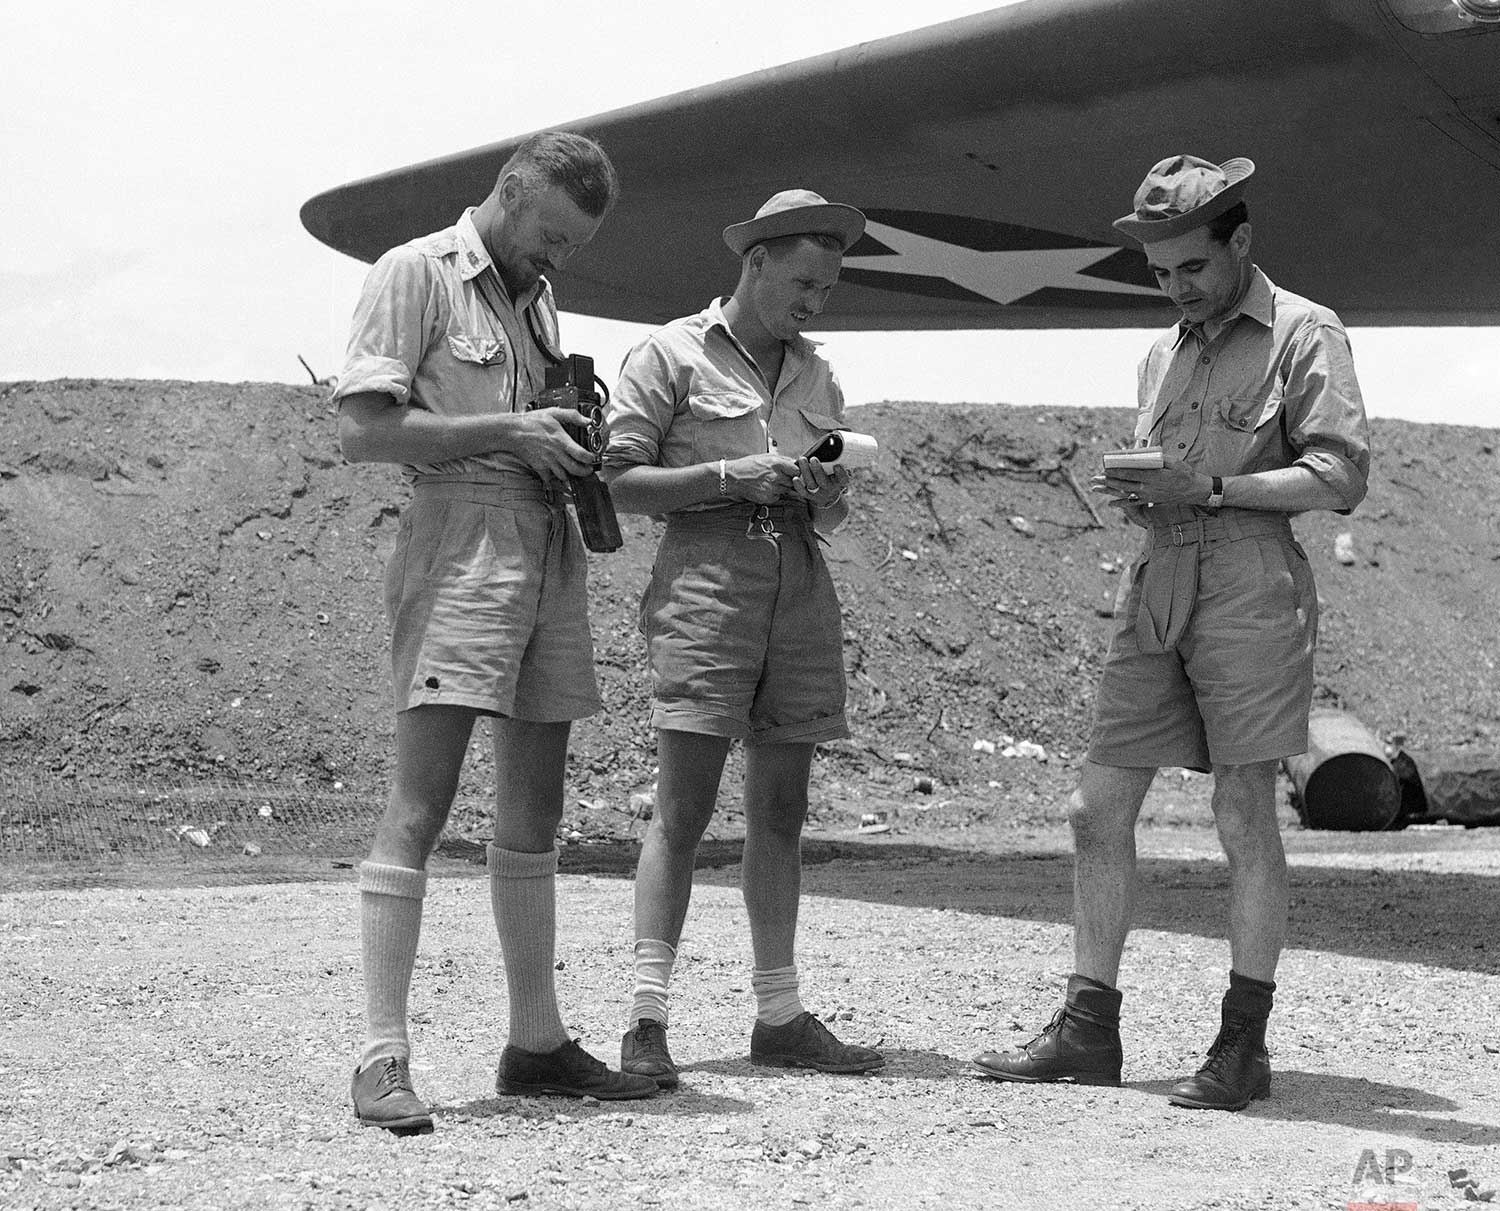 From left, Ed Widdis, Associated Press photographer; Dean Schedler, Associated Press writer and Murlin Spencer, Associated Press writer. These are the men on the job covering the news for The AP in New Guinea, Nov. 23, 1942. (AP Photo/Ed Widdis)